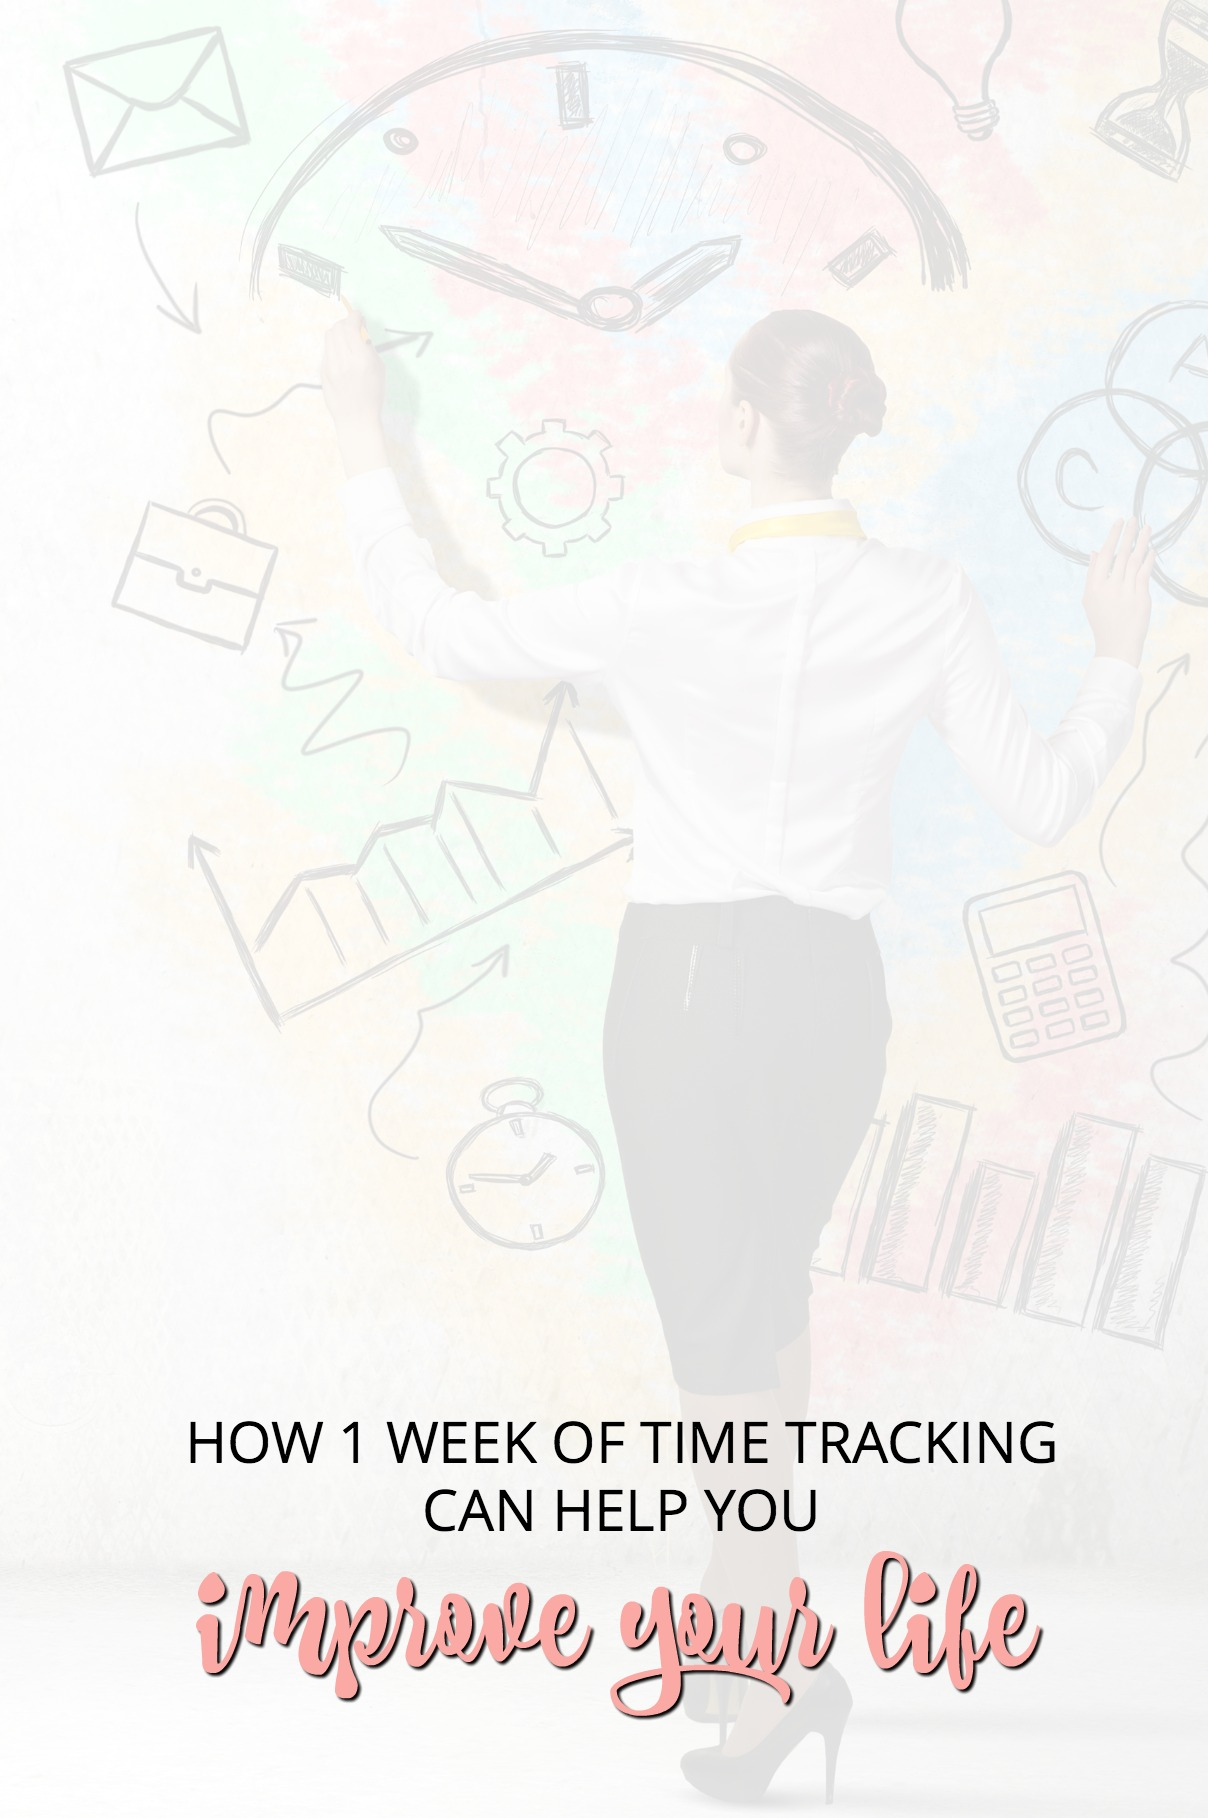 After years of working from home, I started a job where I commute to an office. With my routine in flux, I started tracking time to help me adjust.